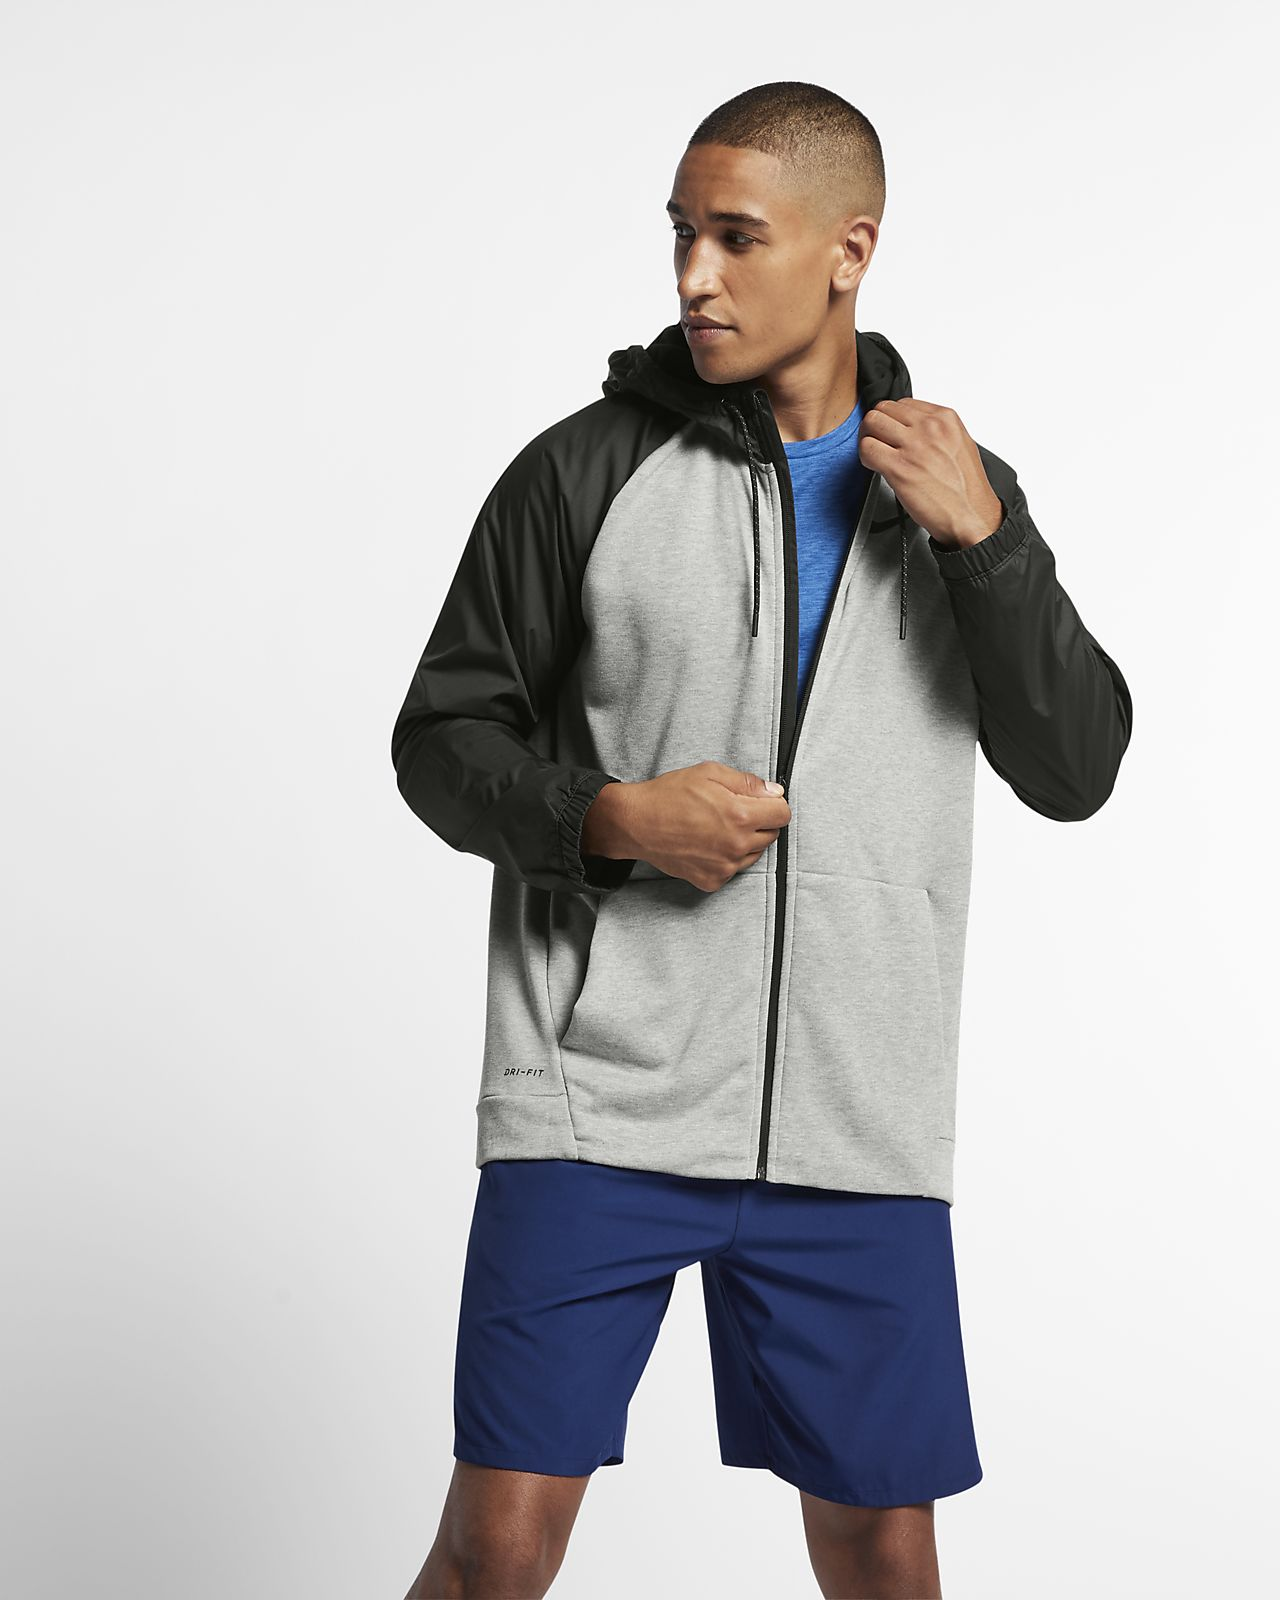 145545bae3 Nike Dri-FIT Men's Utility Full-Zip Training Hoodie. Nike.com